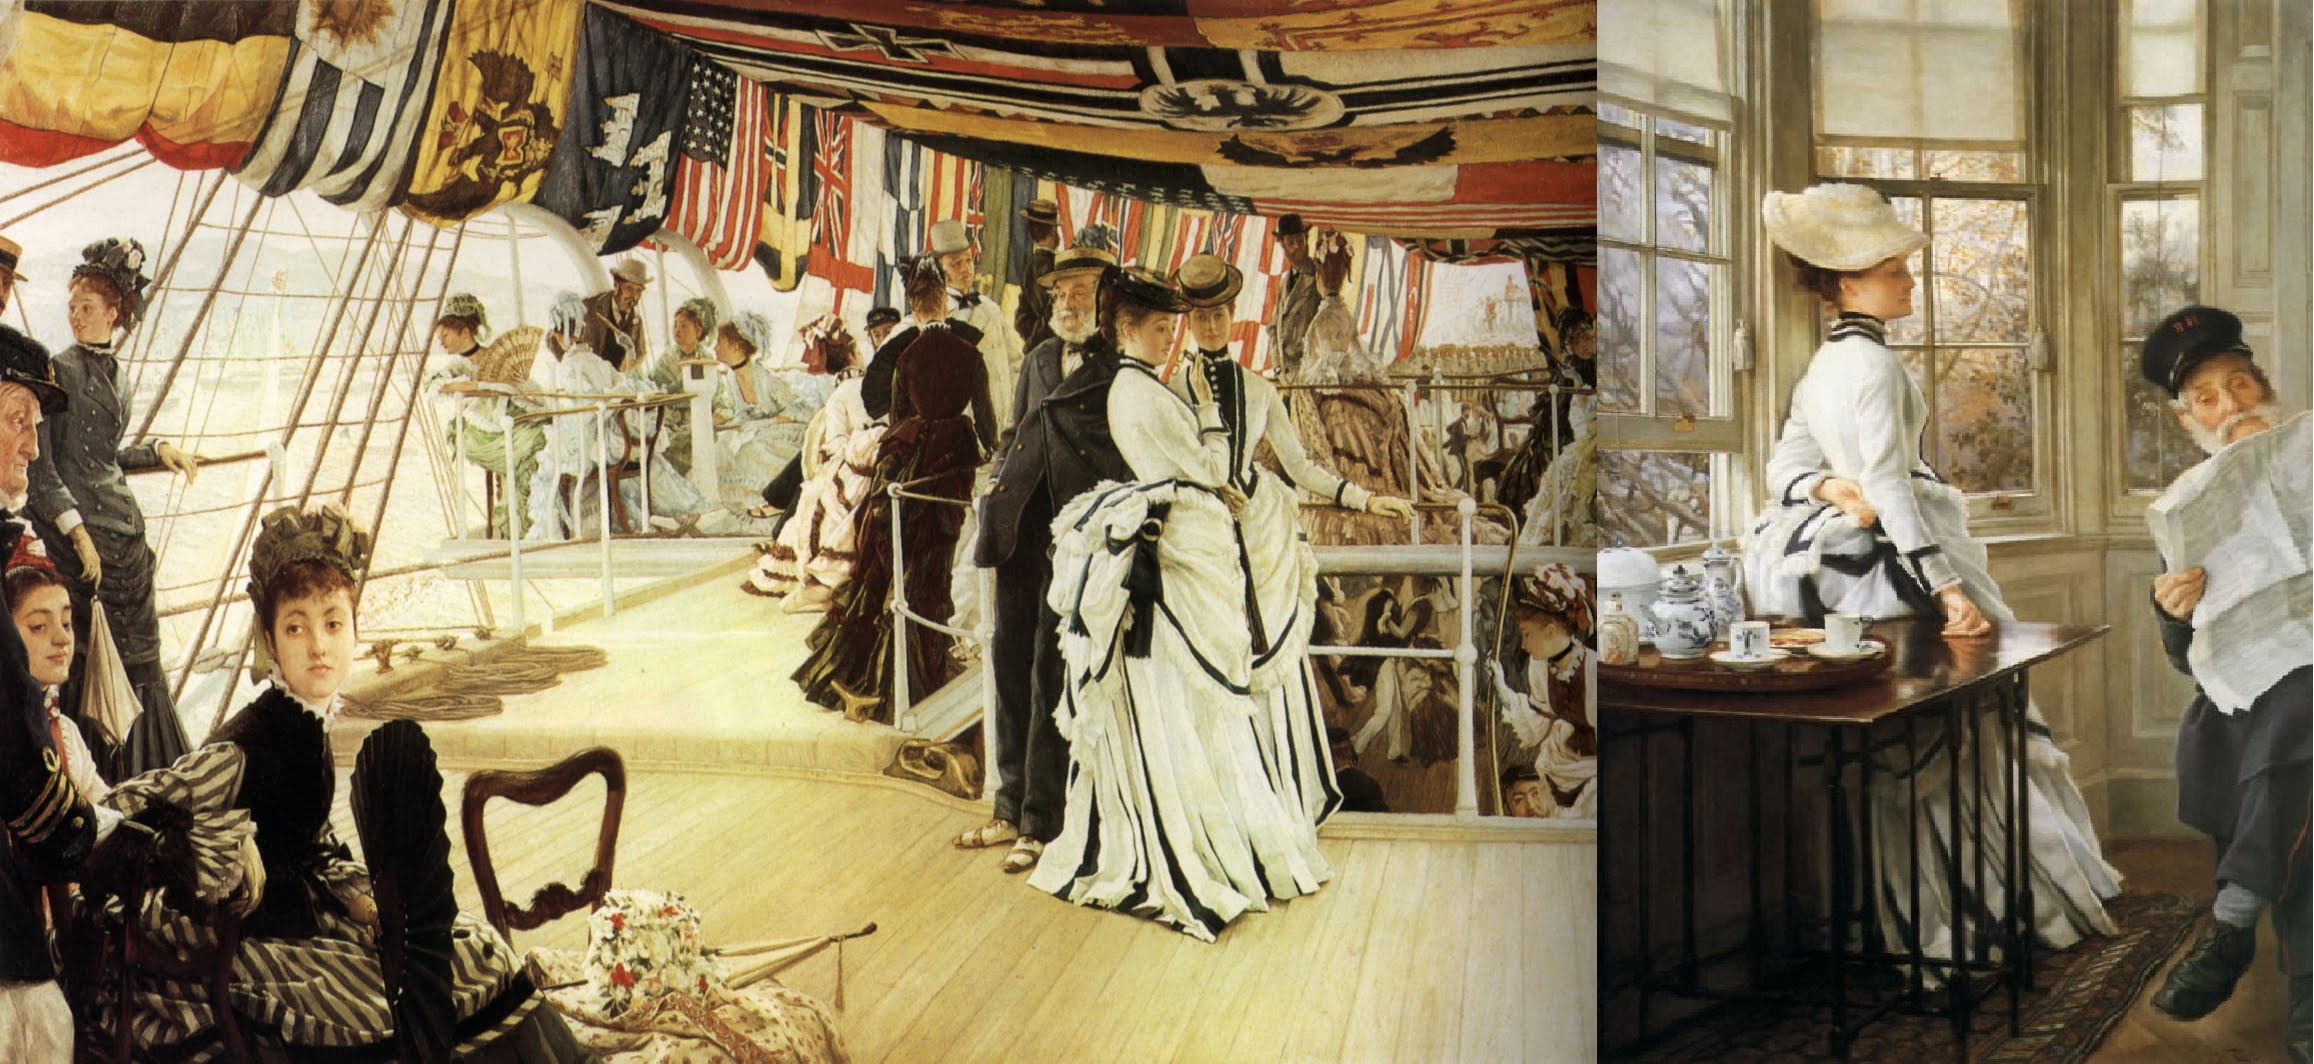 Am I the only one who noticed that the dress wich the lady wears in 'Reading the News' by James Tissot (Oil on Canvas 1874) is the same as the dress in 'The Ball on Shipboard' by James Tissot